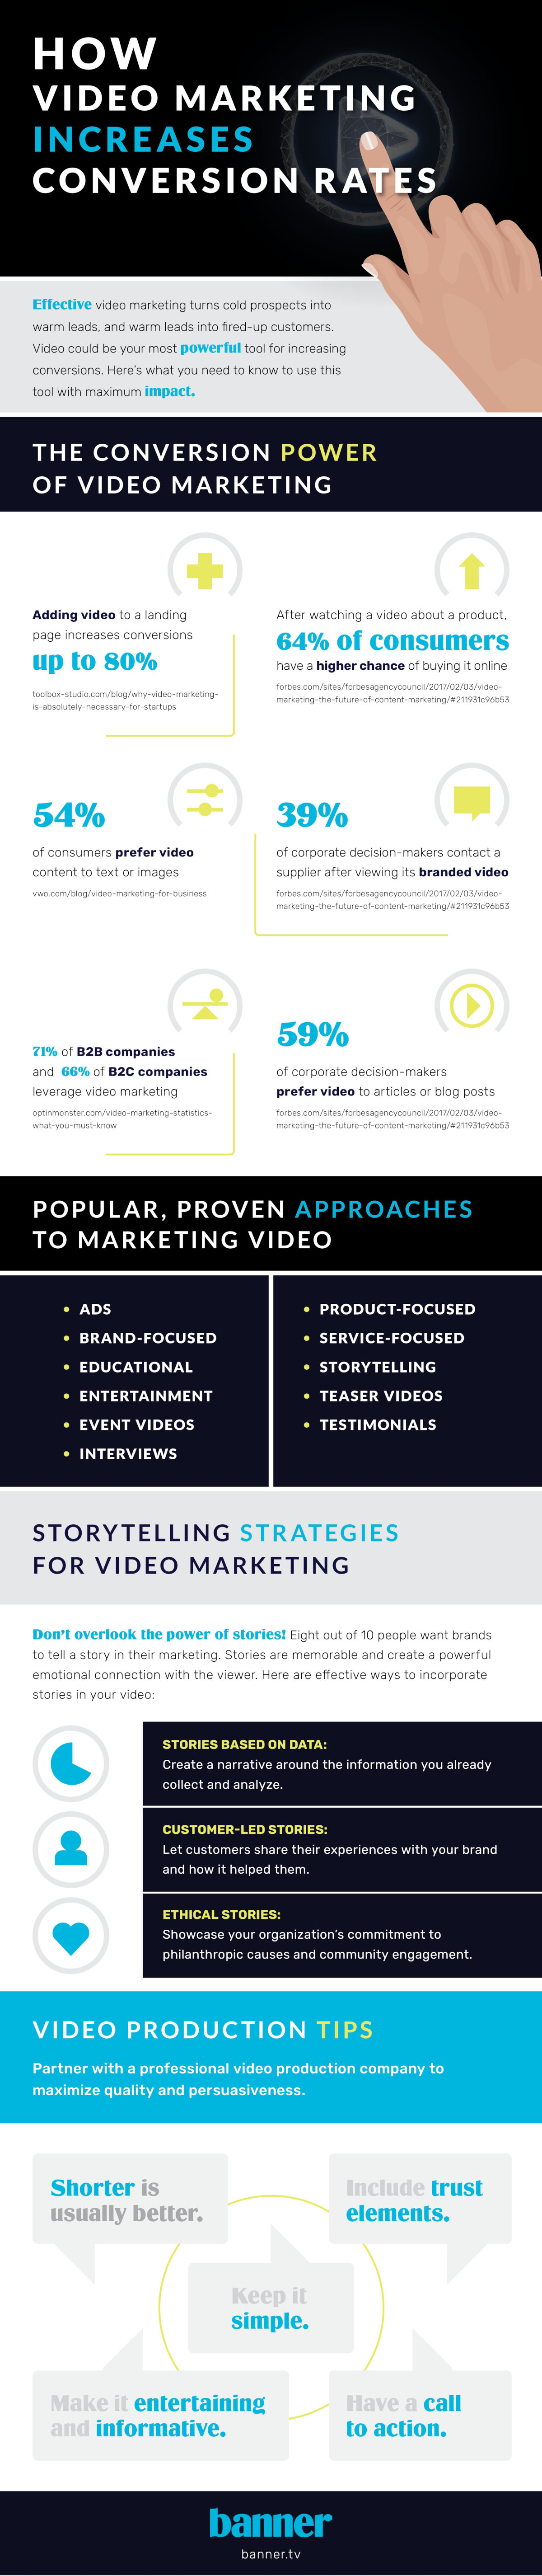 How Video Marketing Increases Conversion Rates Infographic